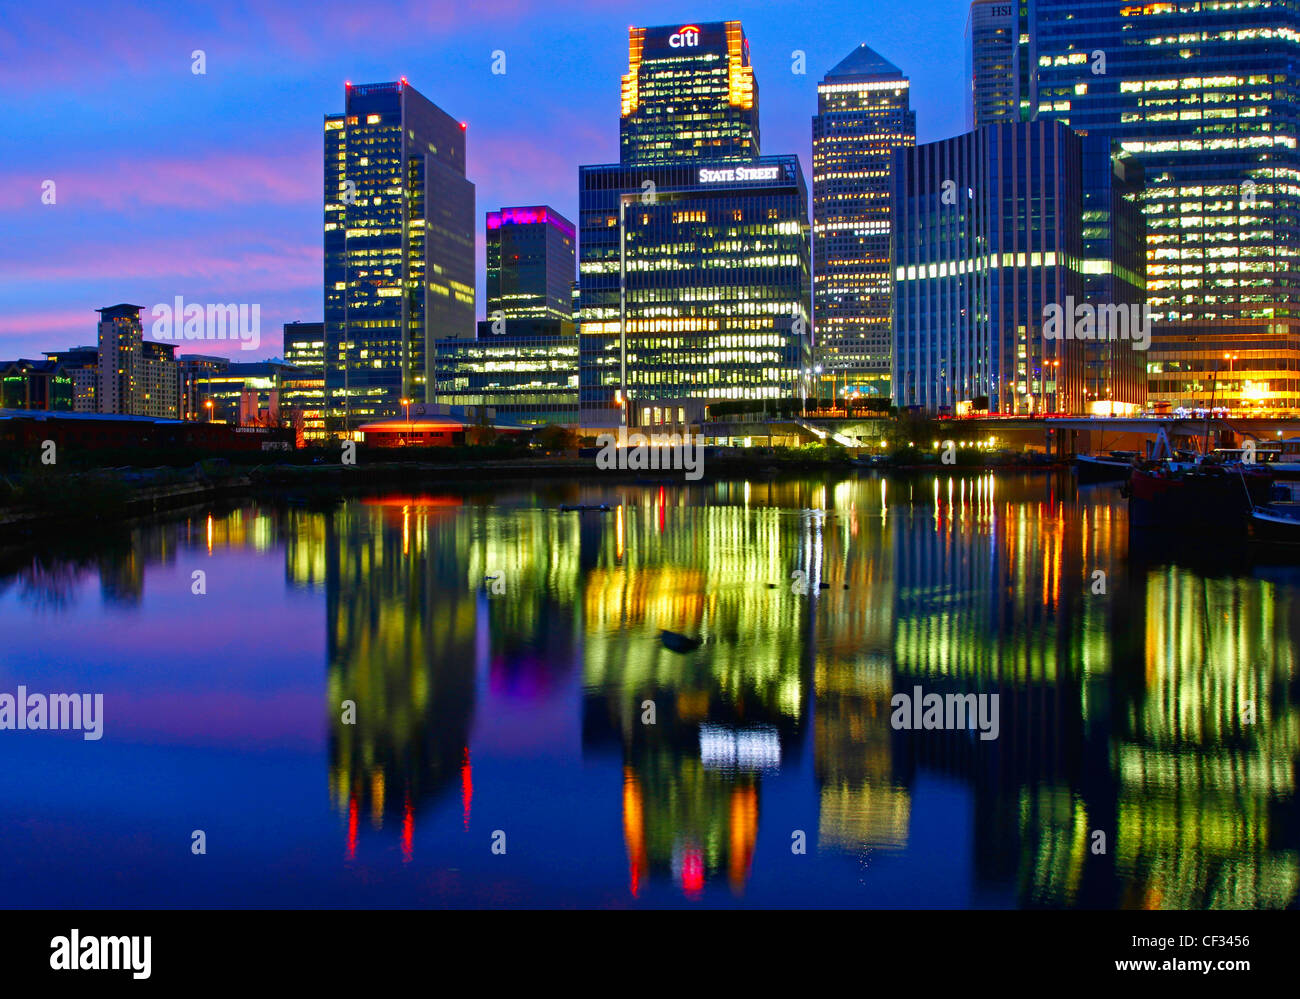 Lights from skyscrapers in Canary Wharf reflected in Blackwall Basin at night. - Stock Image